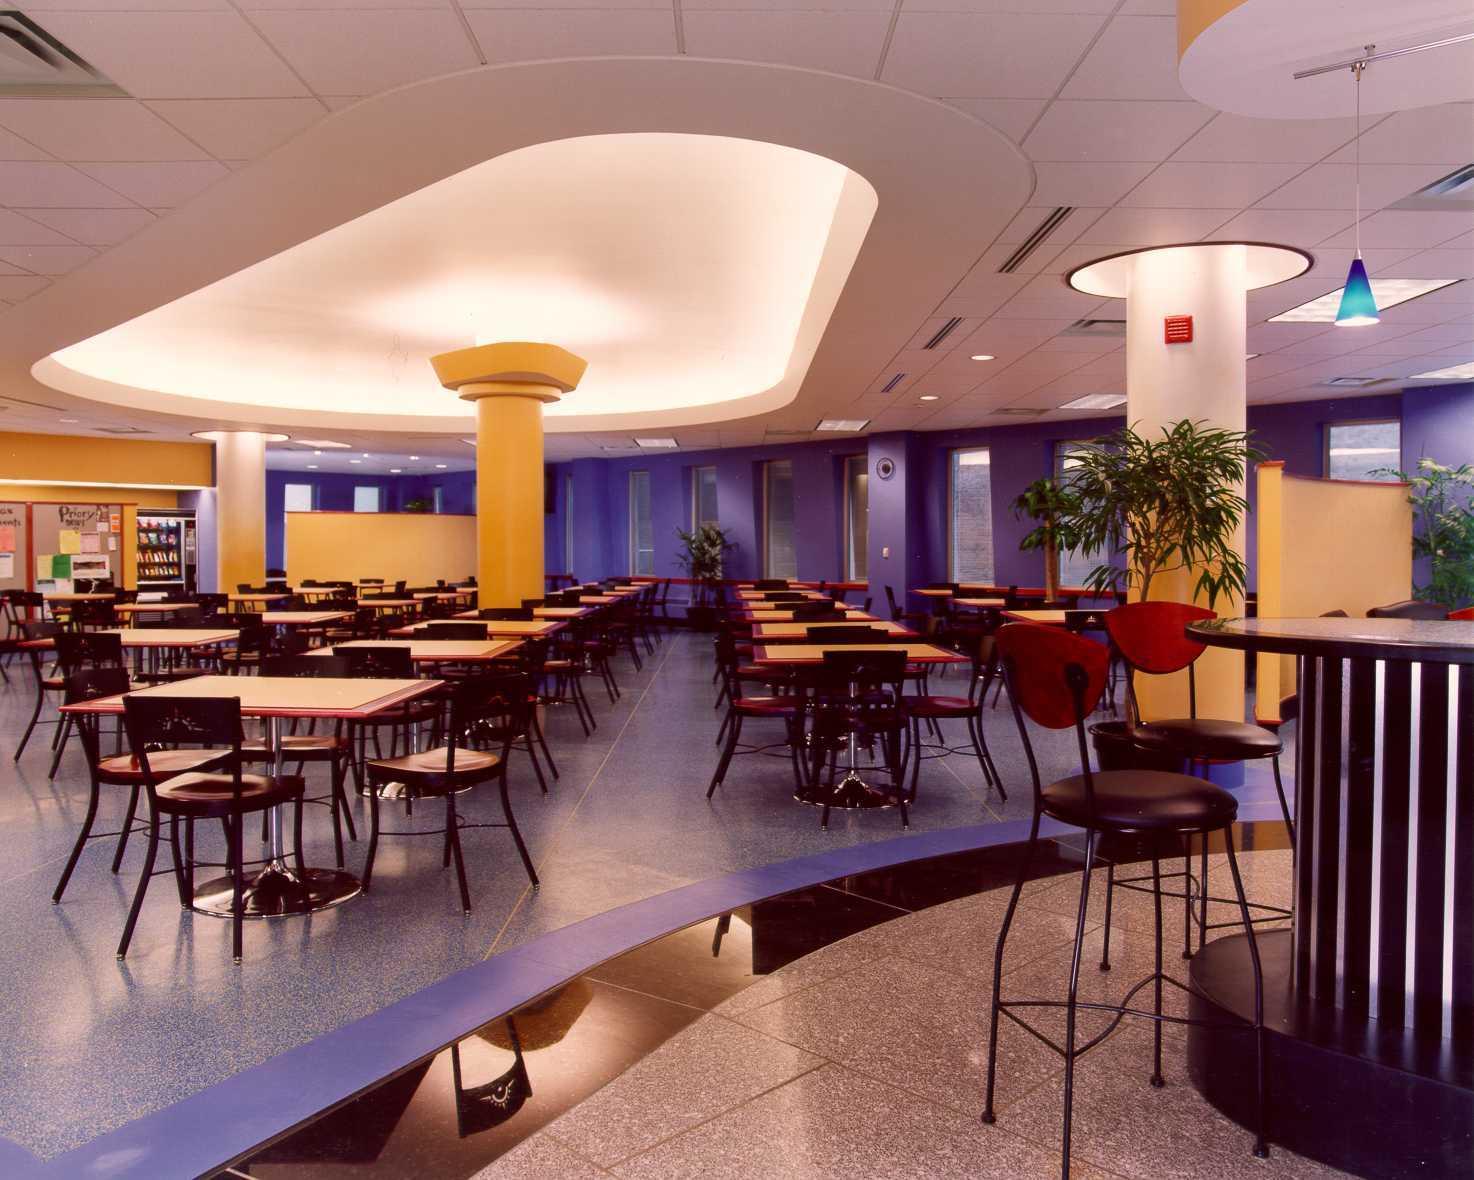 A colorful cafeteria with a plaster compound radius bulkhead, indirect lighting, granite accent flooring